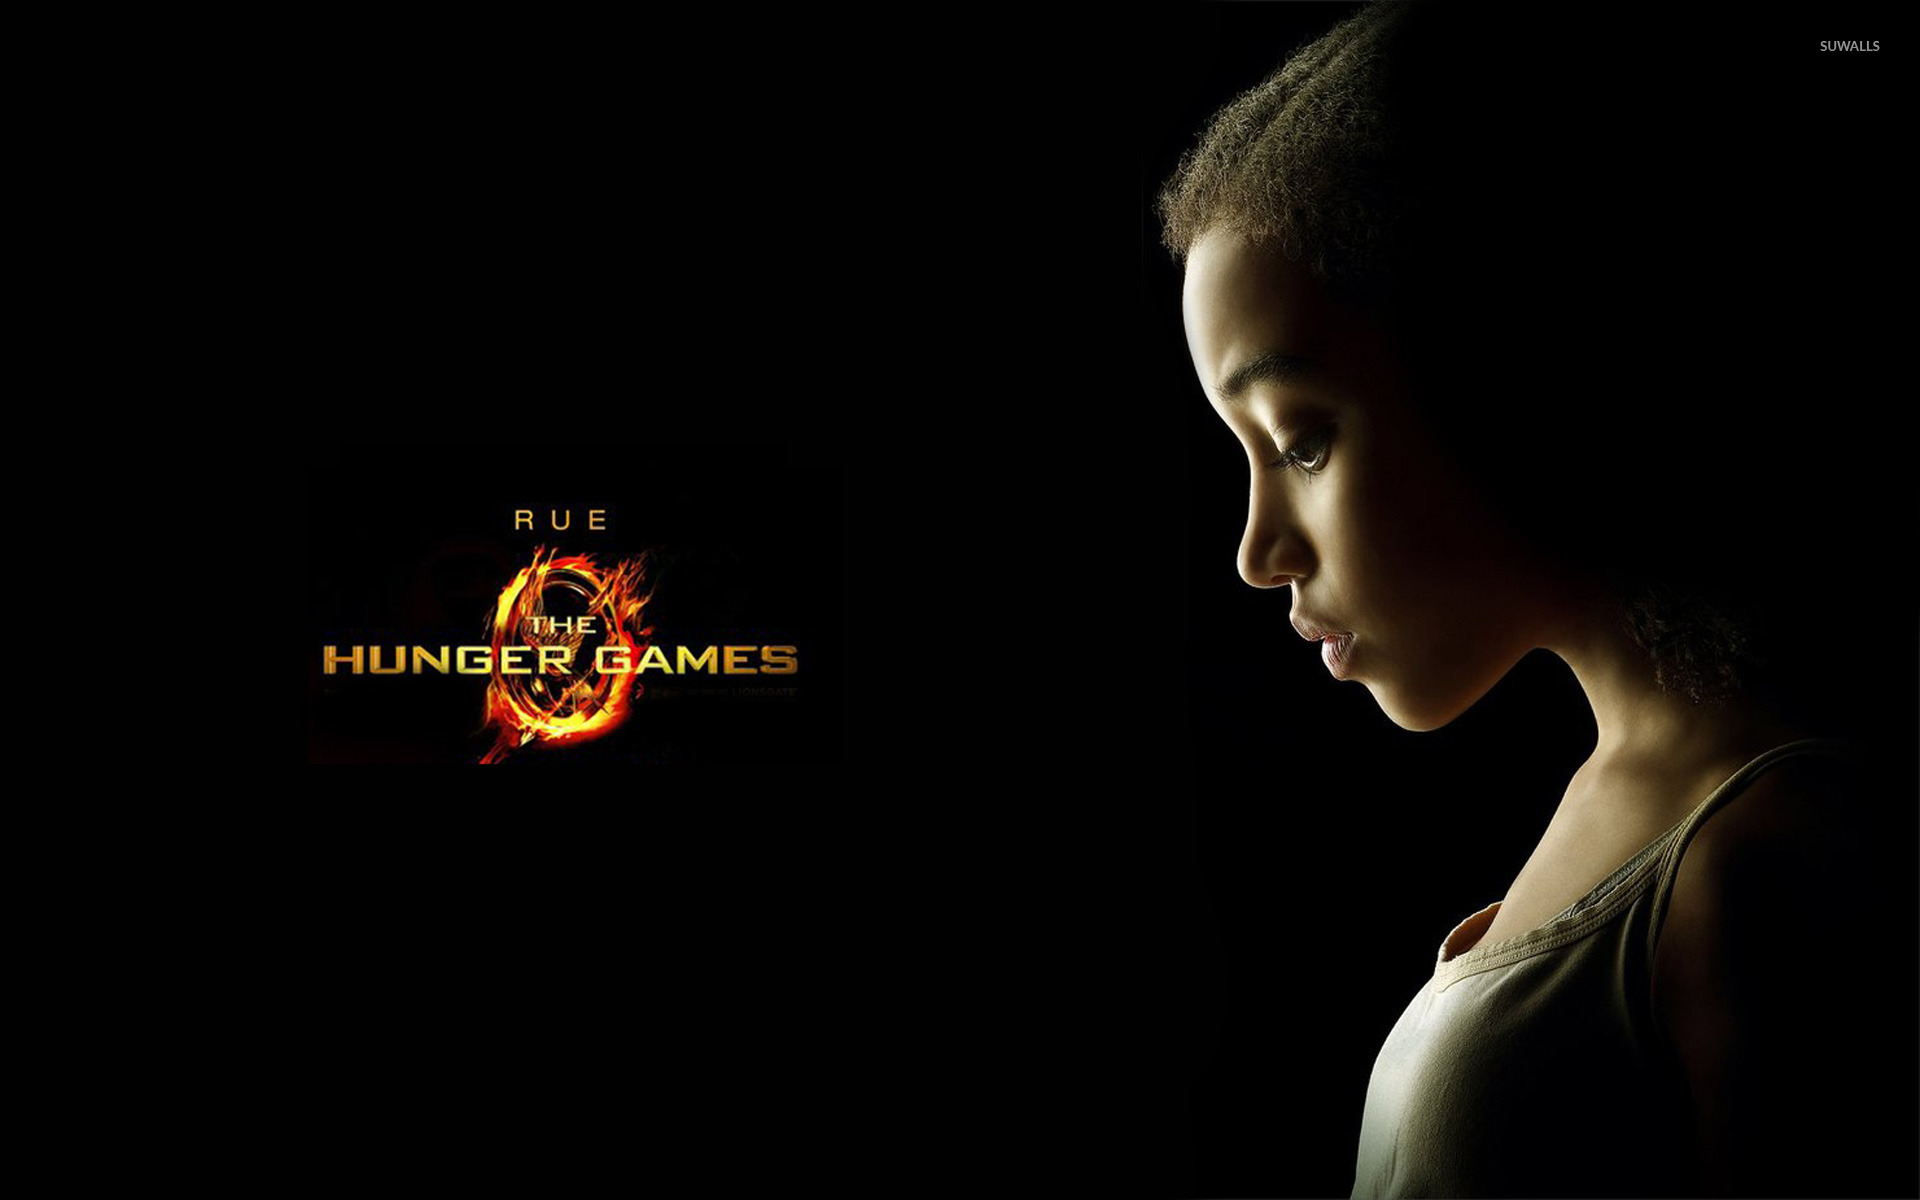 Cool Wallpaper Harry Potter Hunger Games - rue-the-hunger-games-12996-1920x1200  Picture_809689.jpg